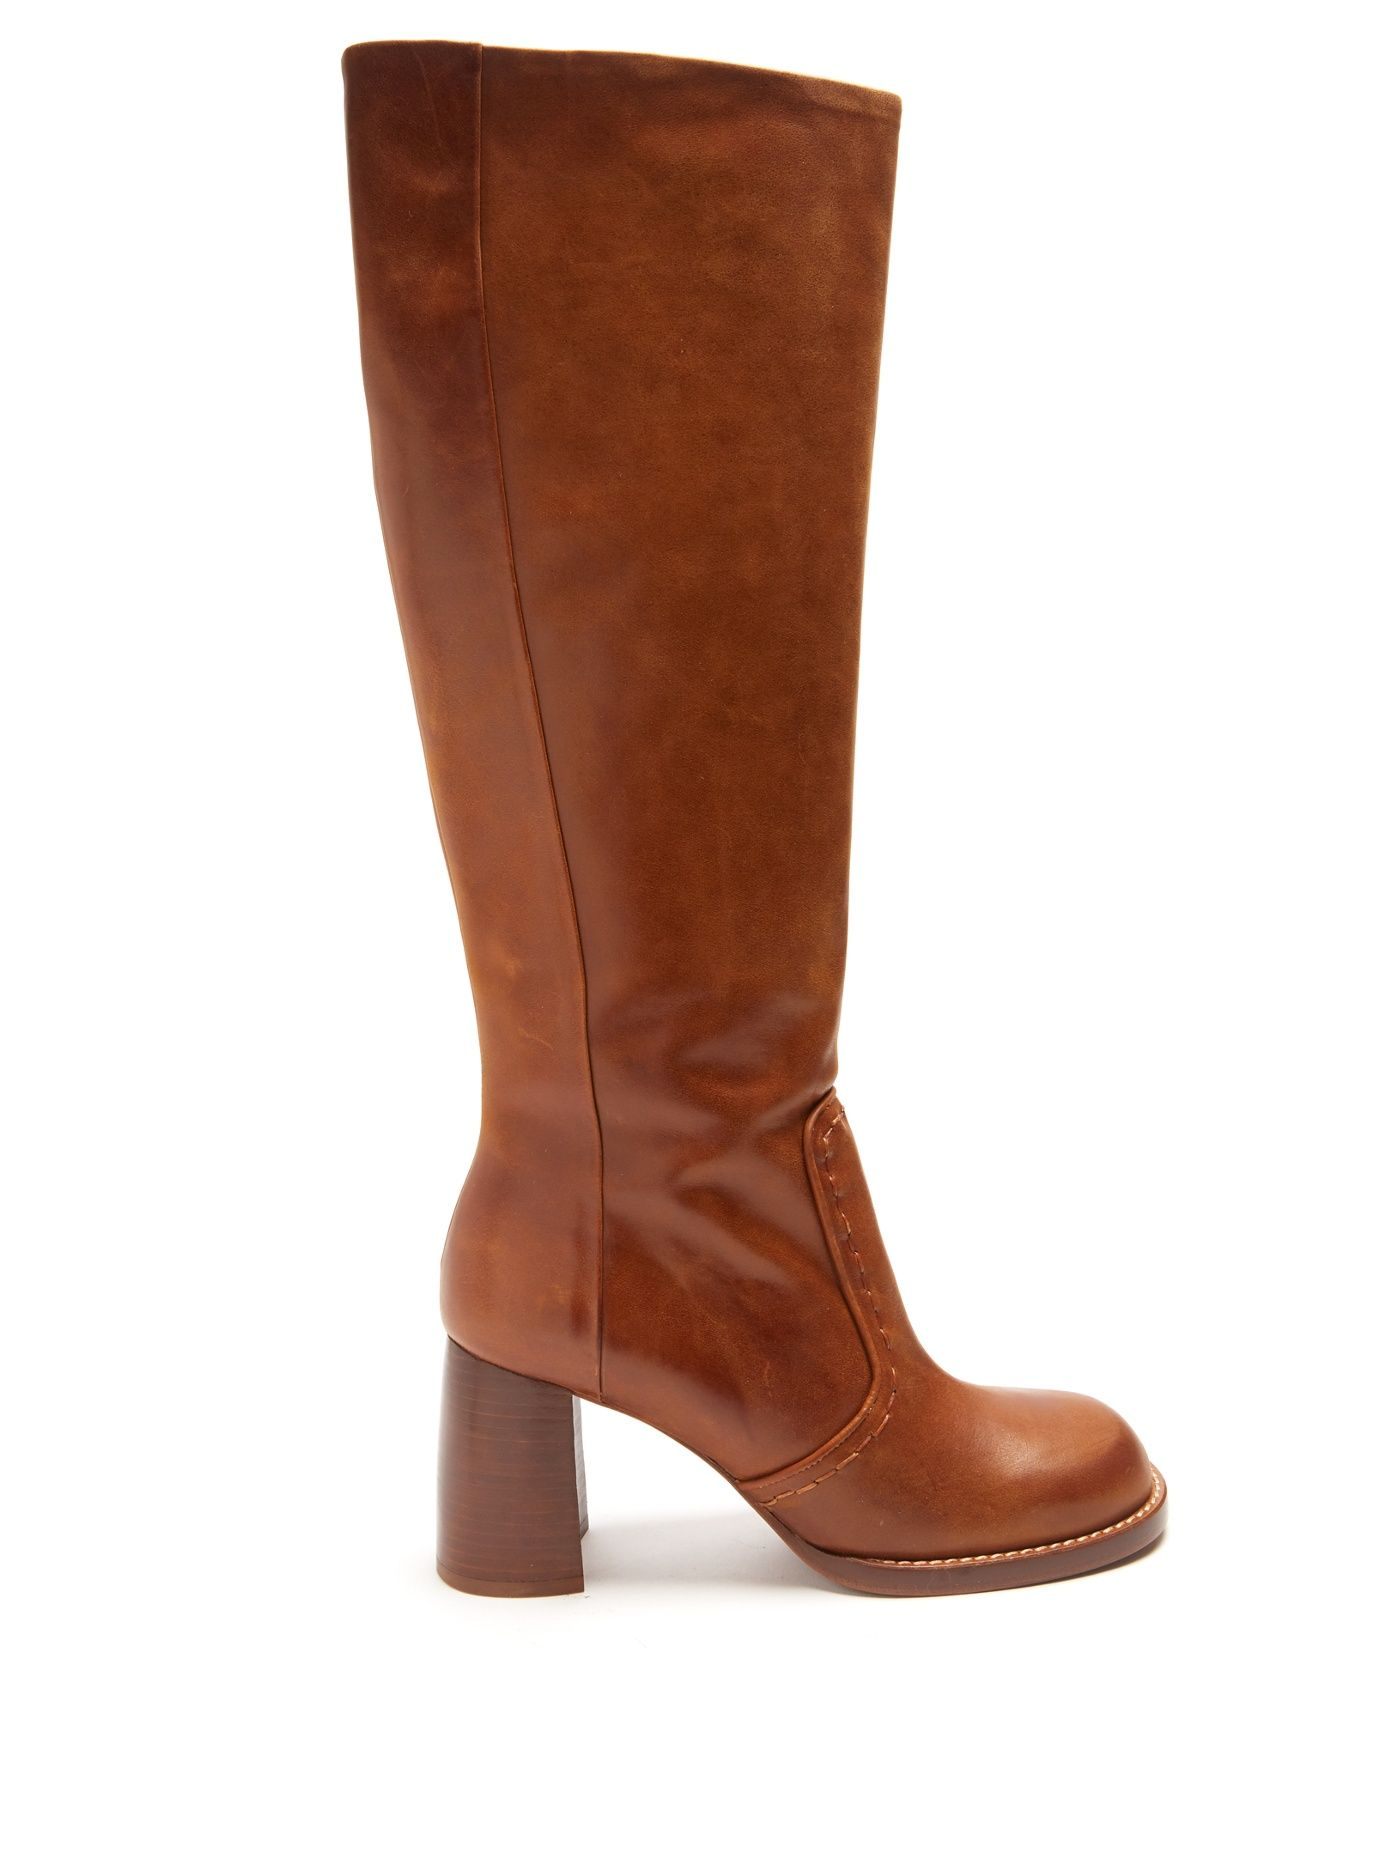 Joseph block heeled boots cheap amazing price Di0emm